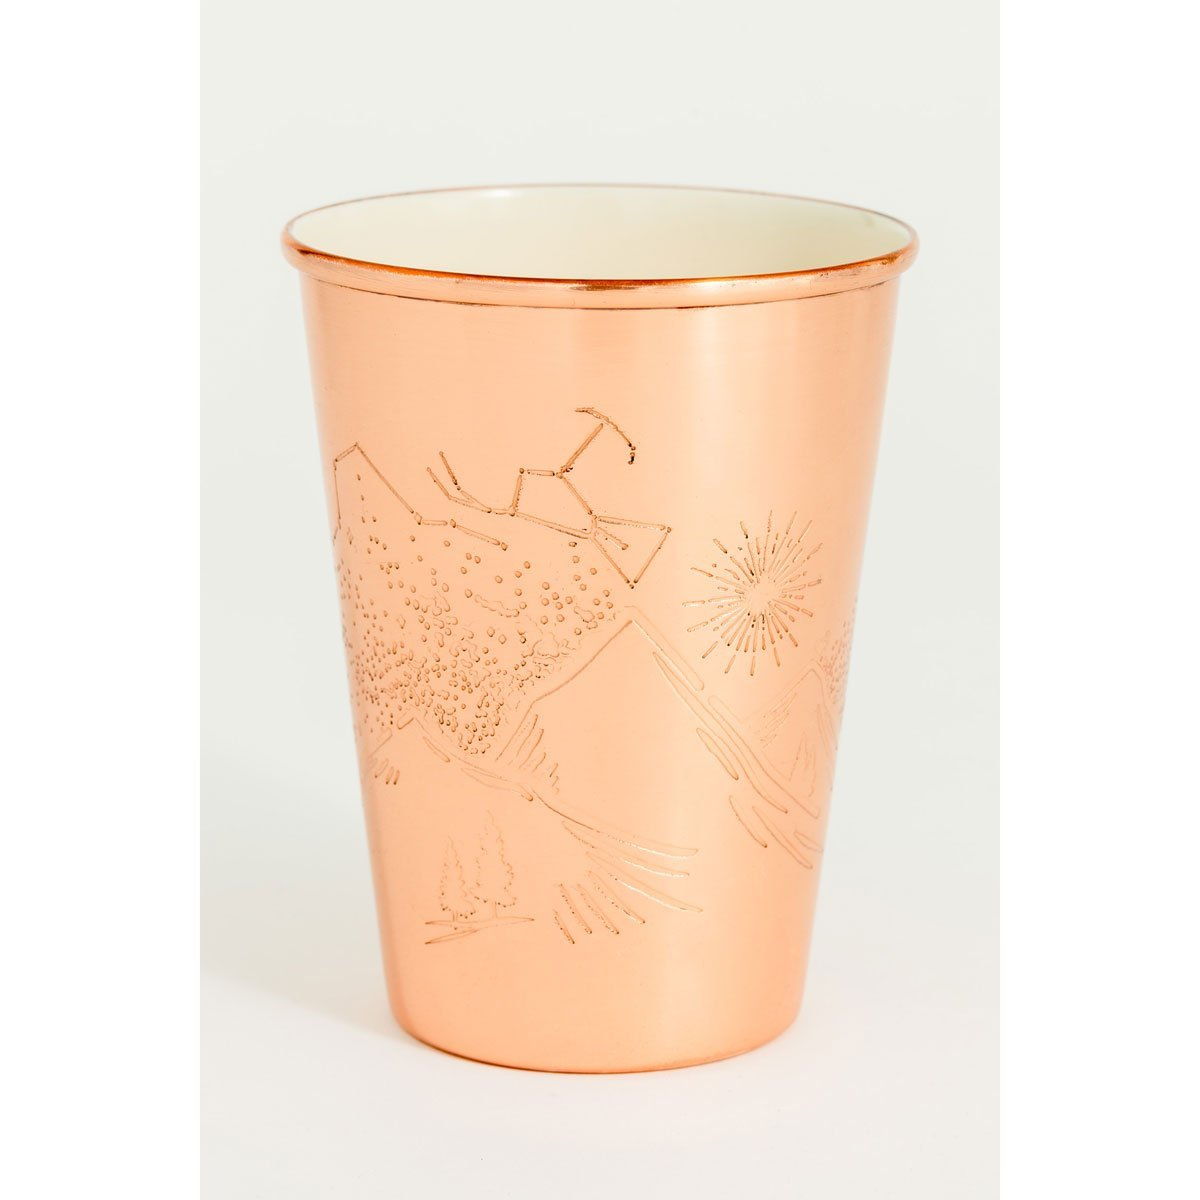 16 oz Enamel Lined Copper Tumbler